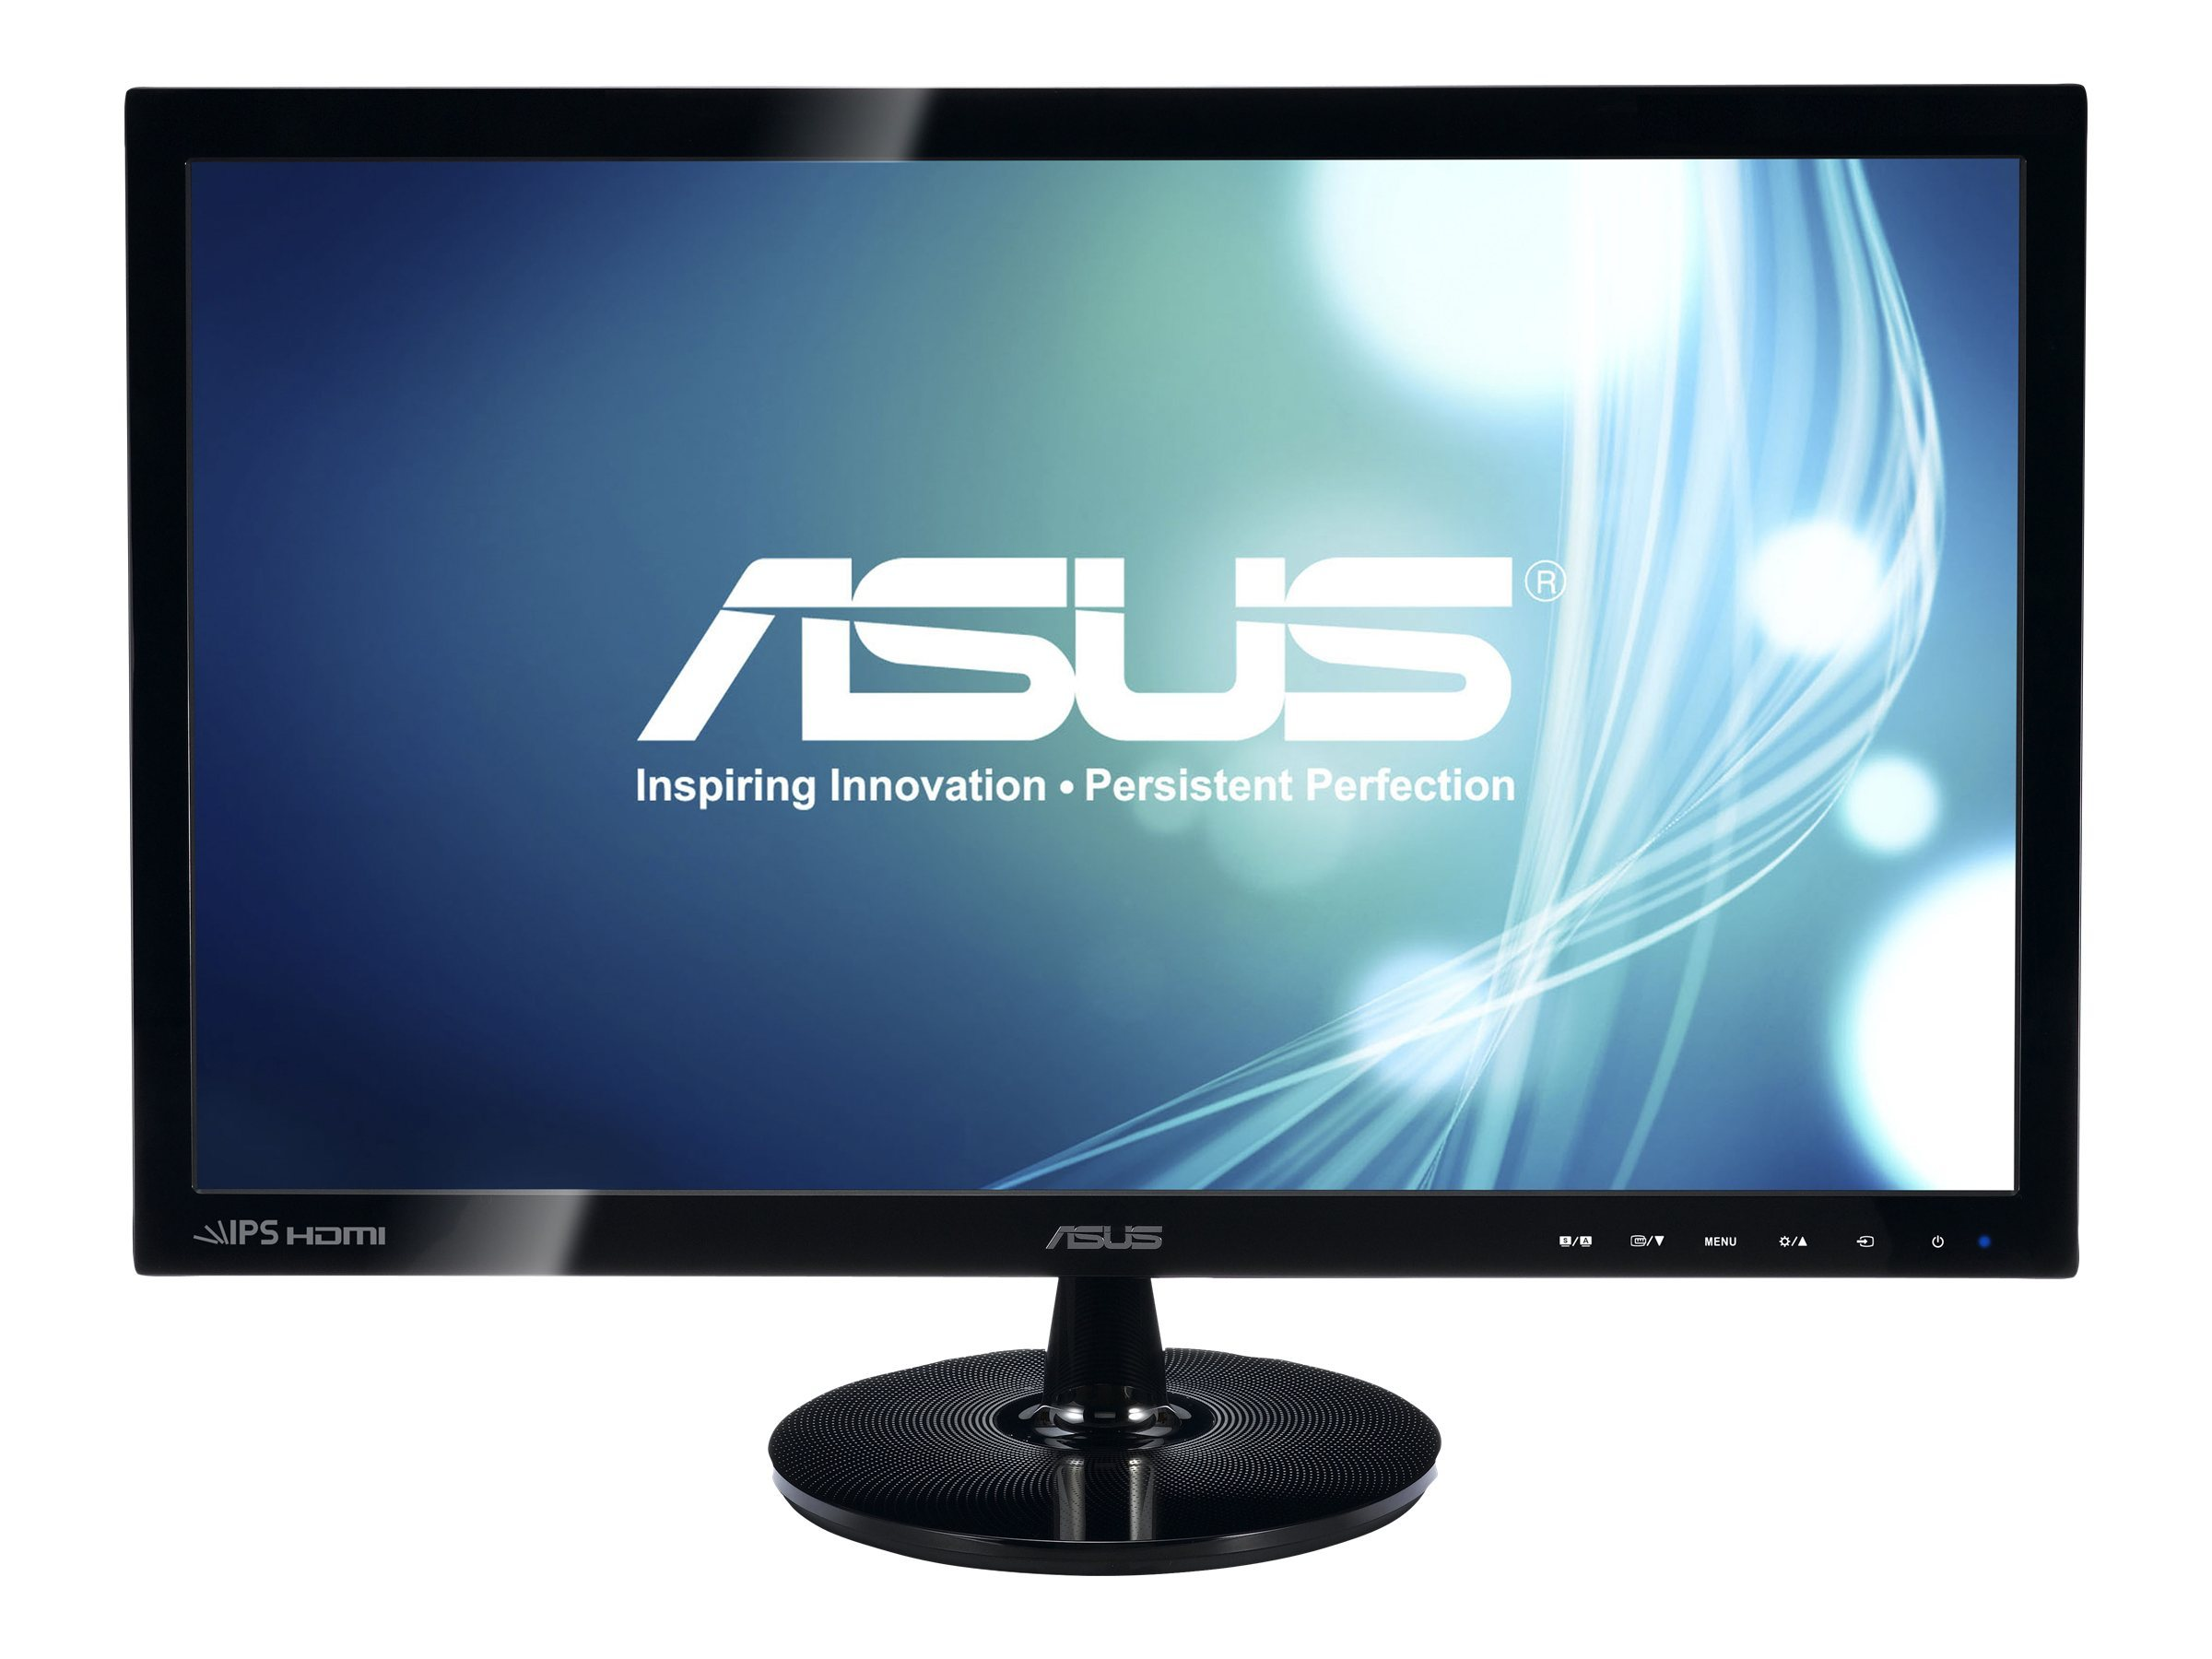 Asus 23 VS239H-P LED-LCD Full HD Monitor, Black